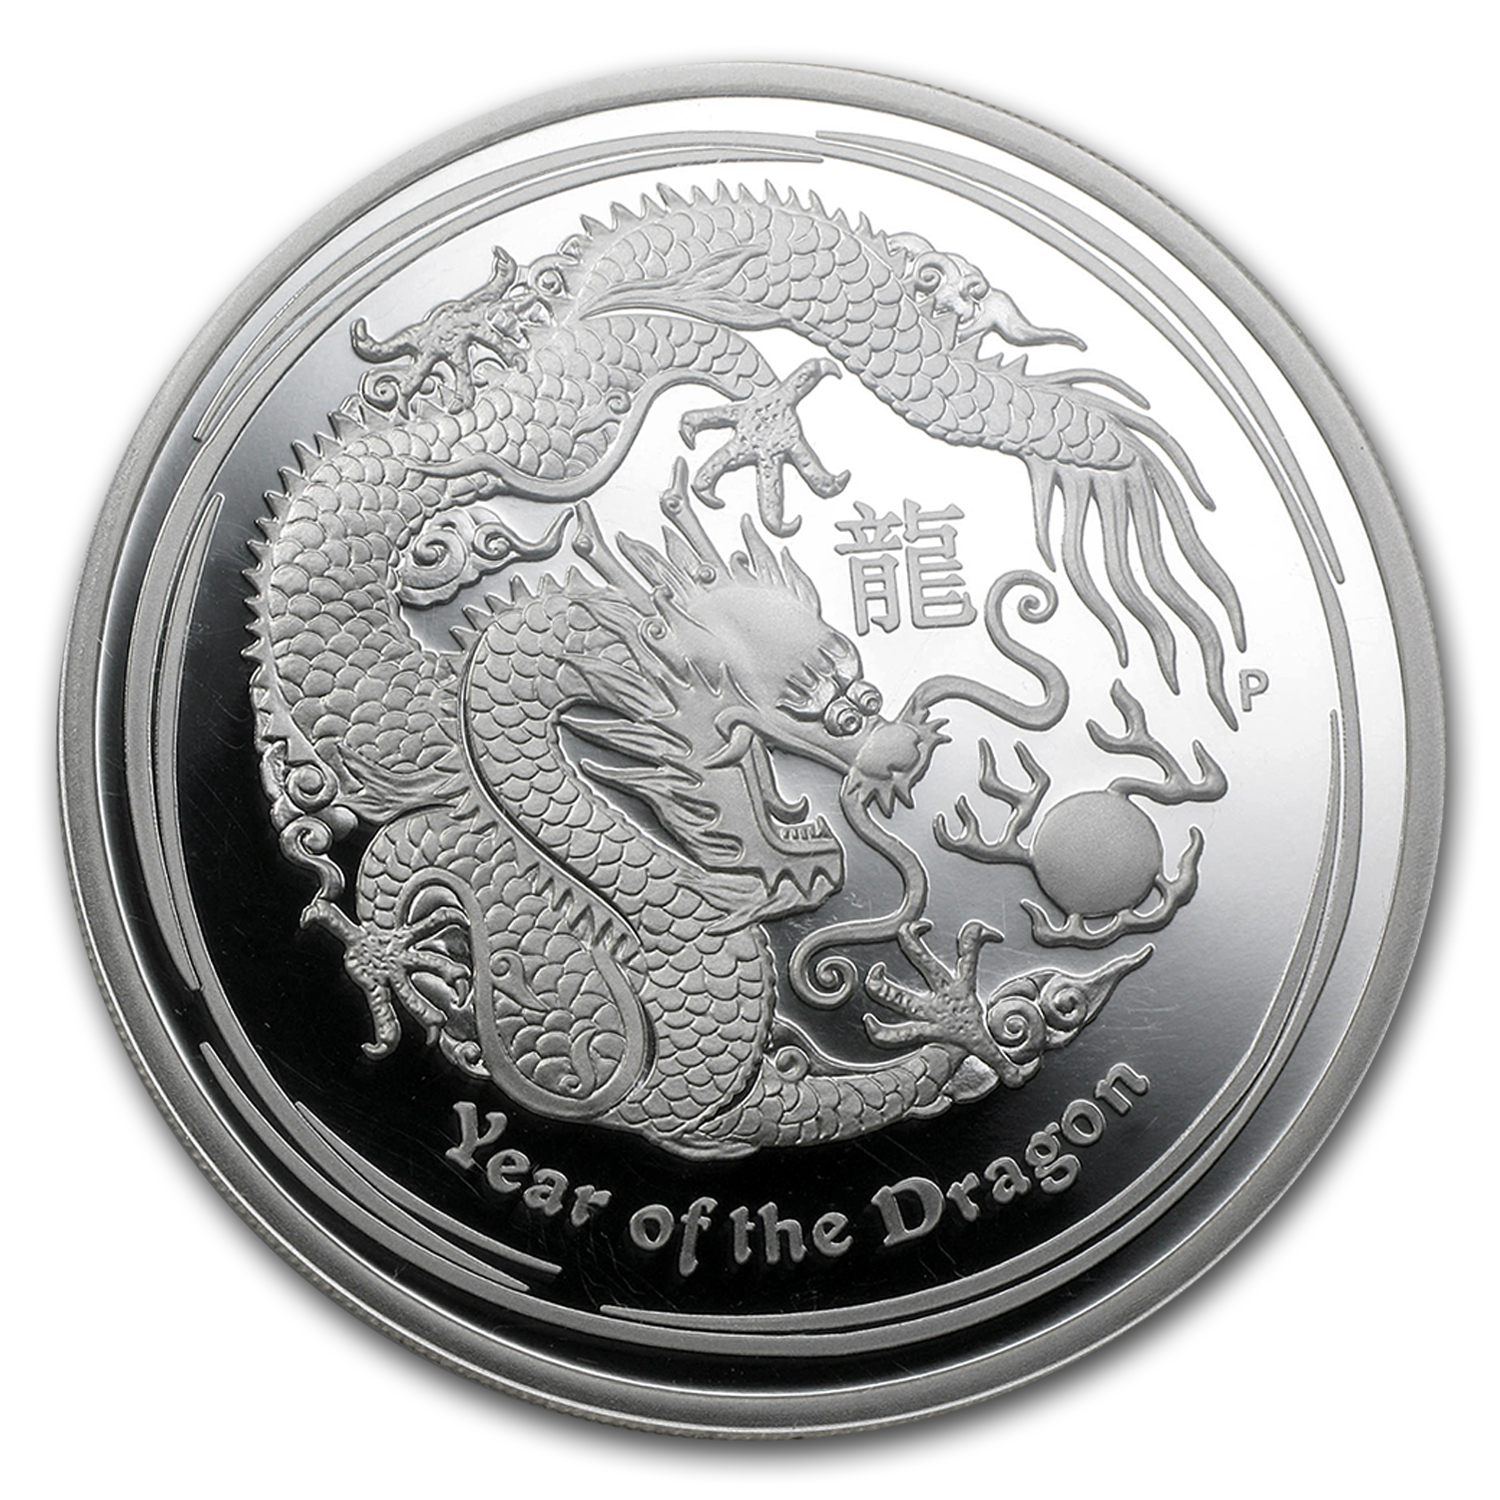 2012 Year of the Dragon 5 oz Proof Silver Coin (SII) PF-70 FR NGC